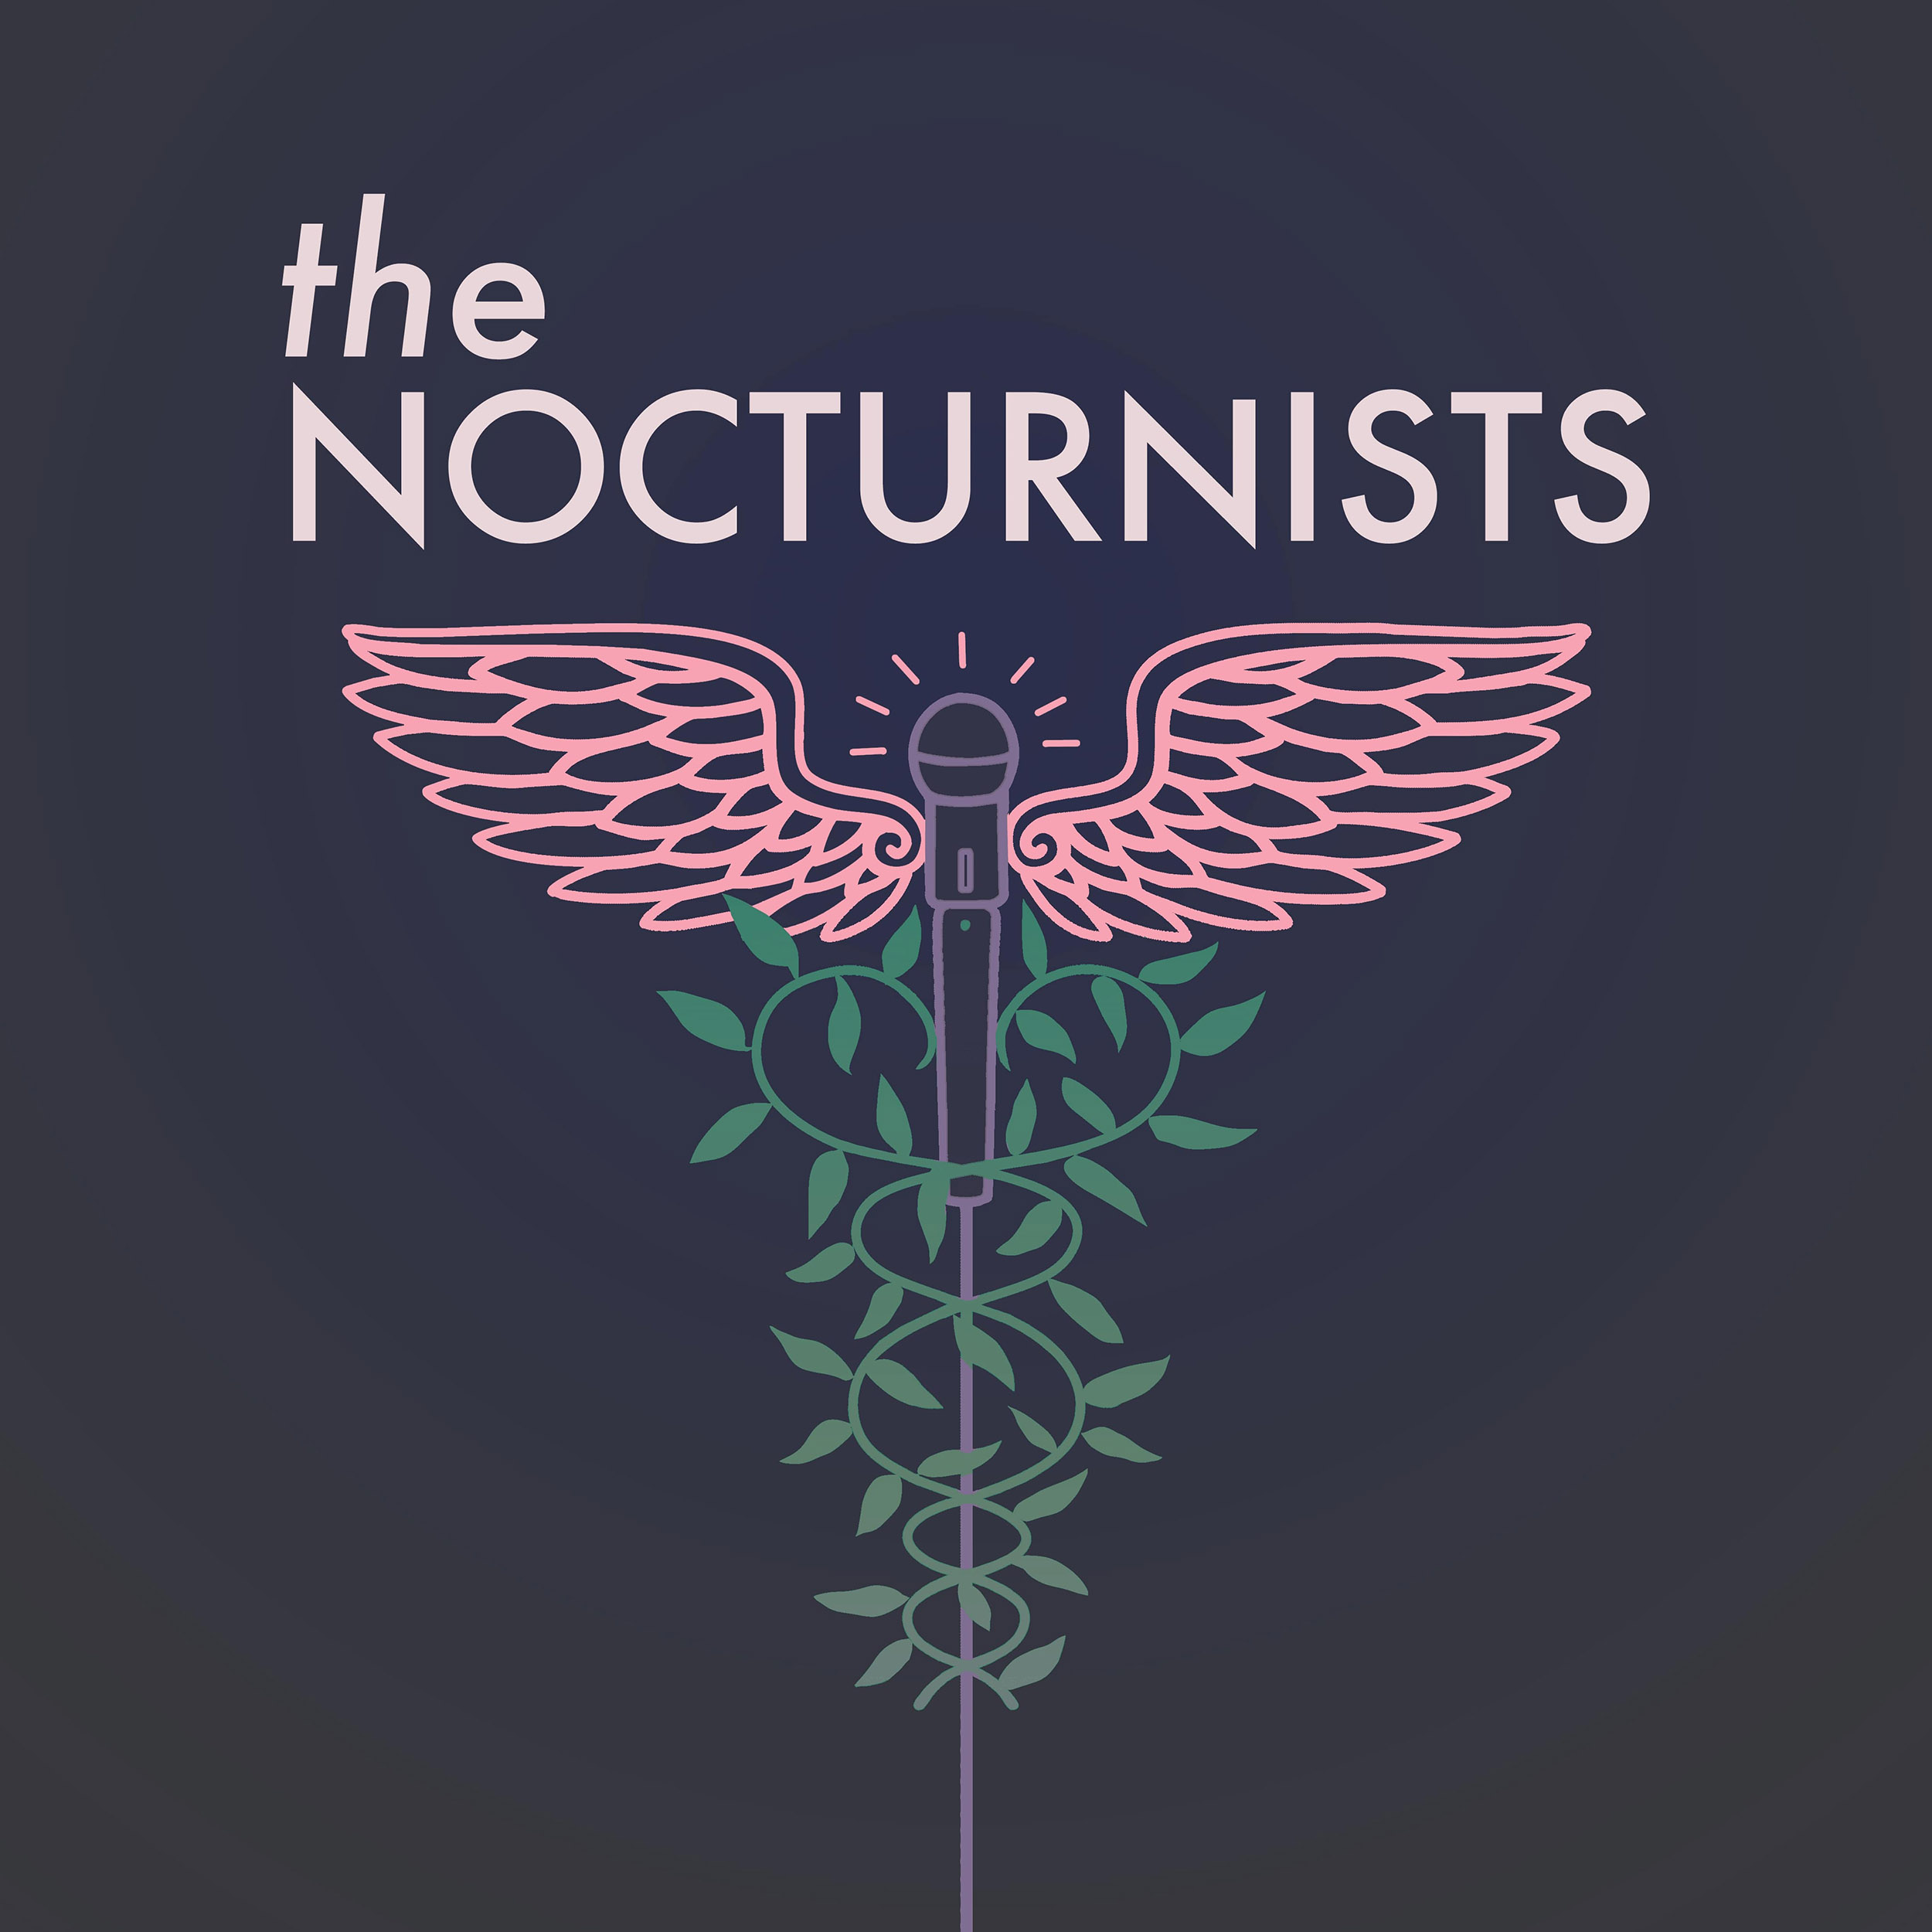 Caption: The Nocturnists, Credit: Lindsay Mound